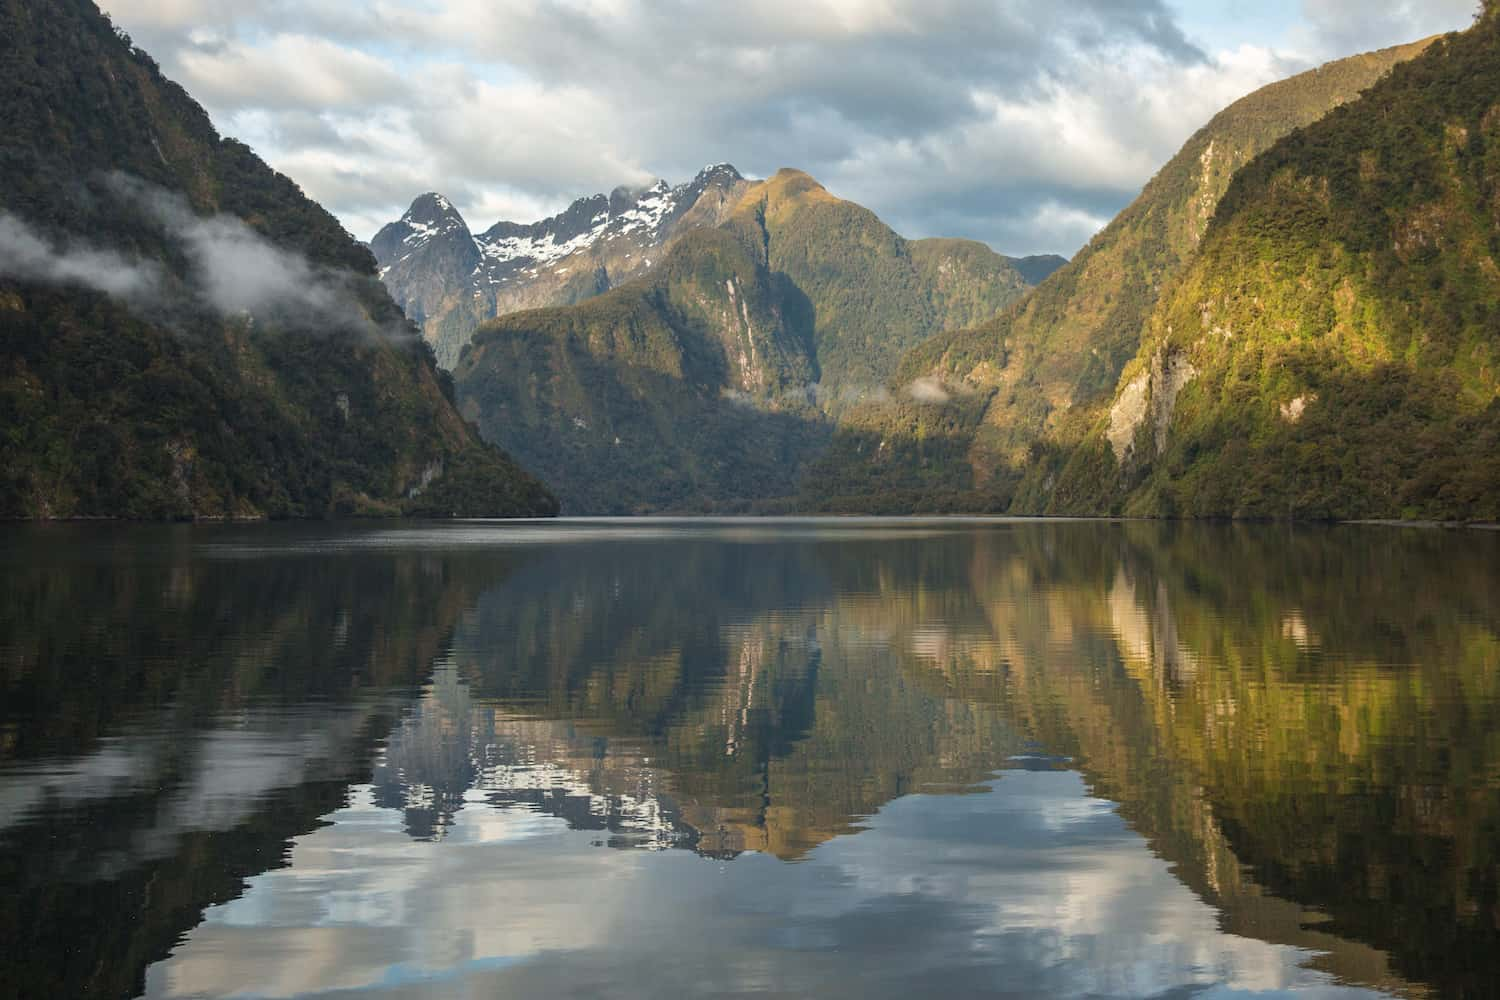 milford sound versus doubtful sound